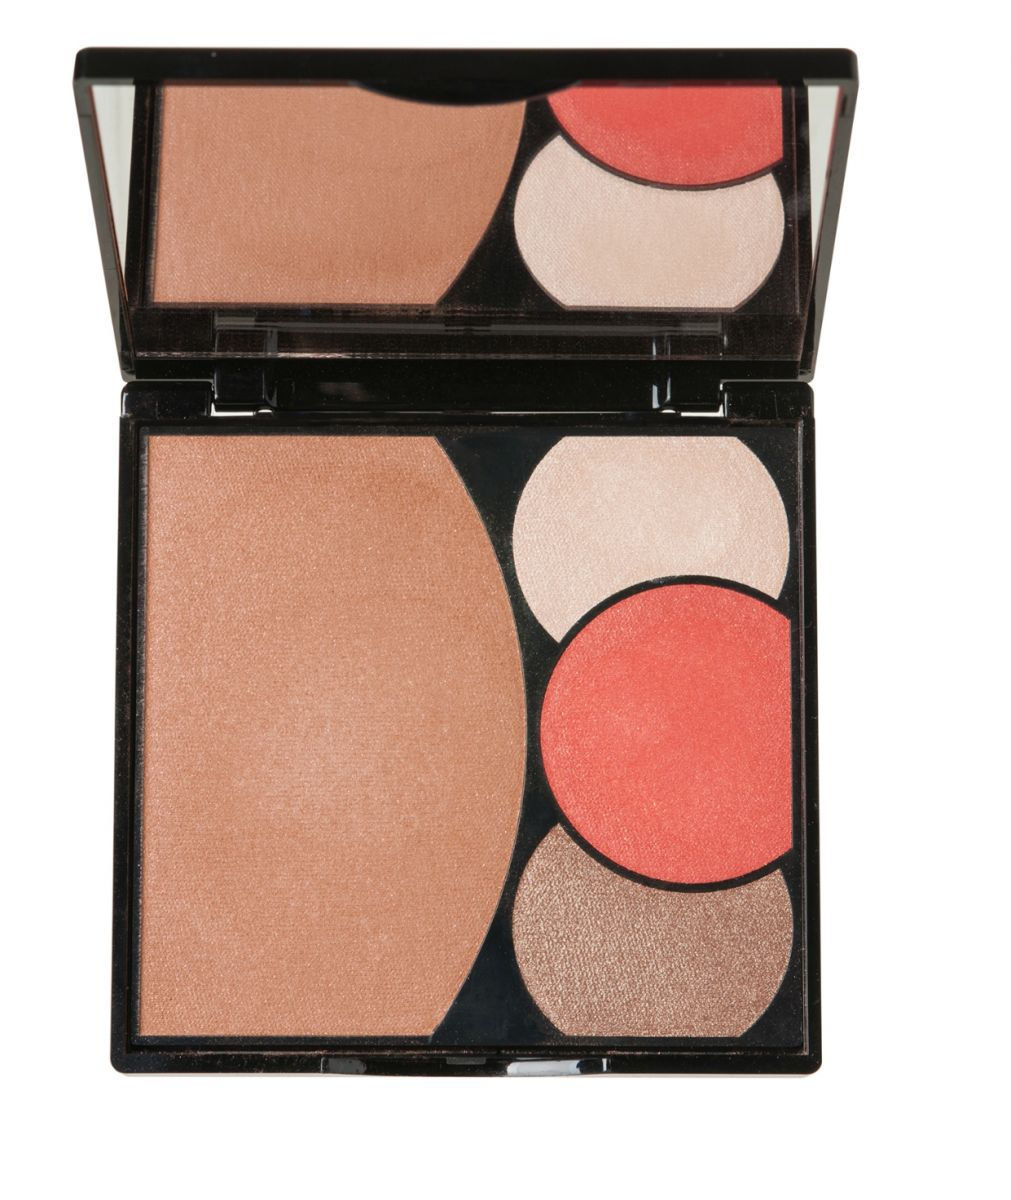 SEA MINERALS SUMMER PALETTE_CORAL SUNSETS